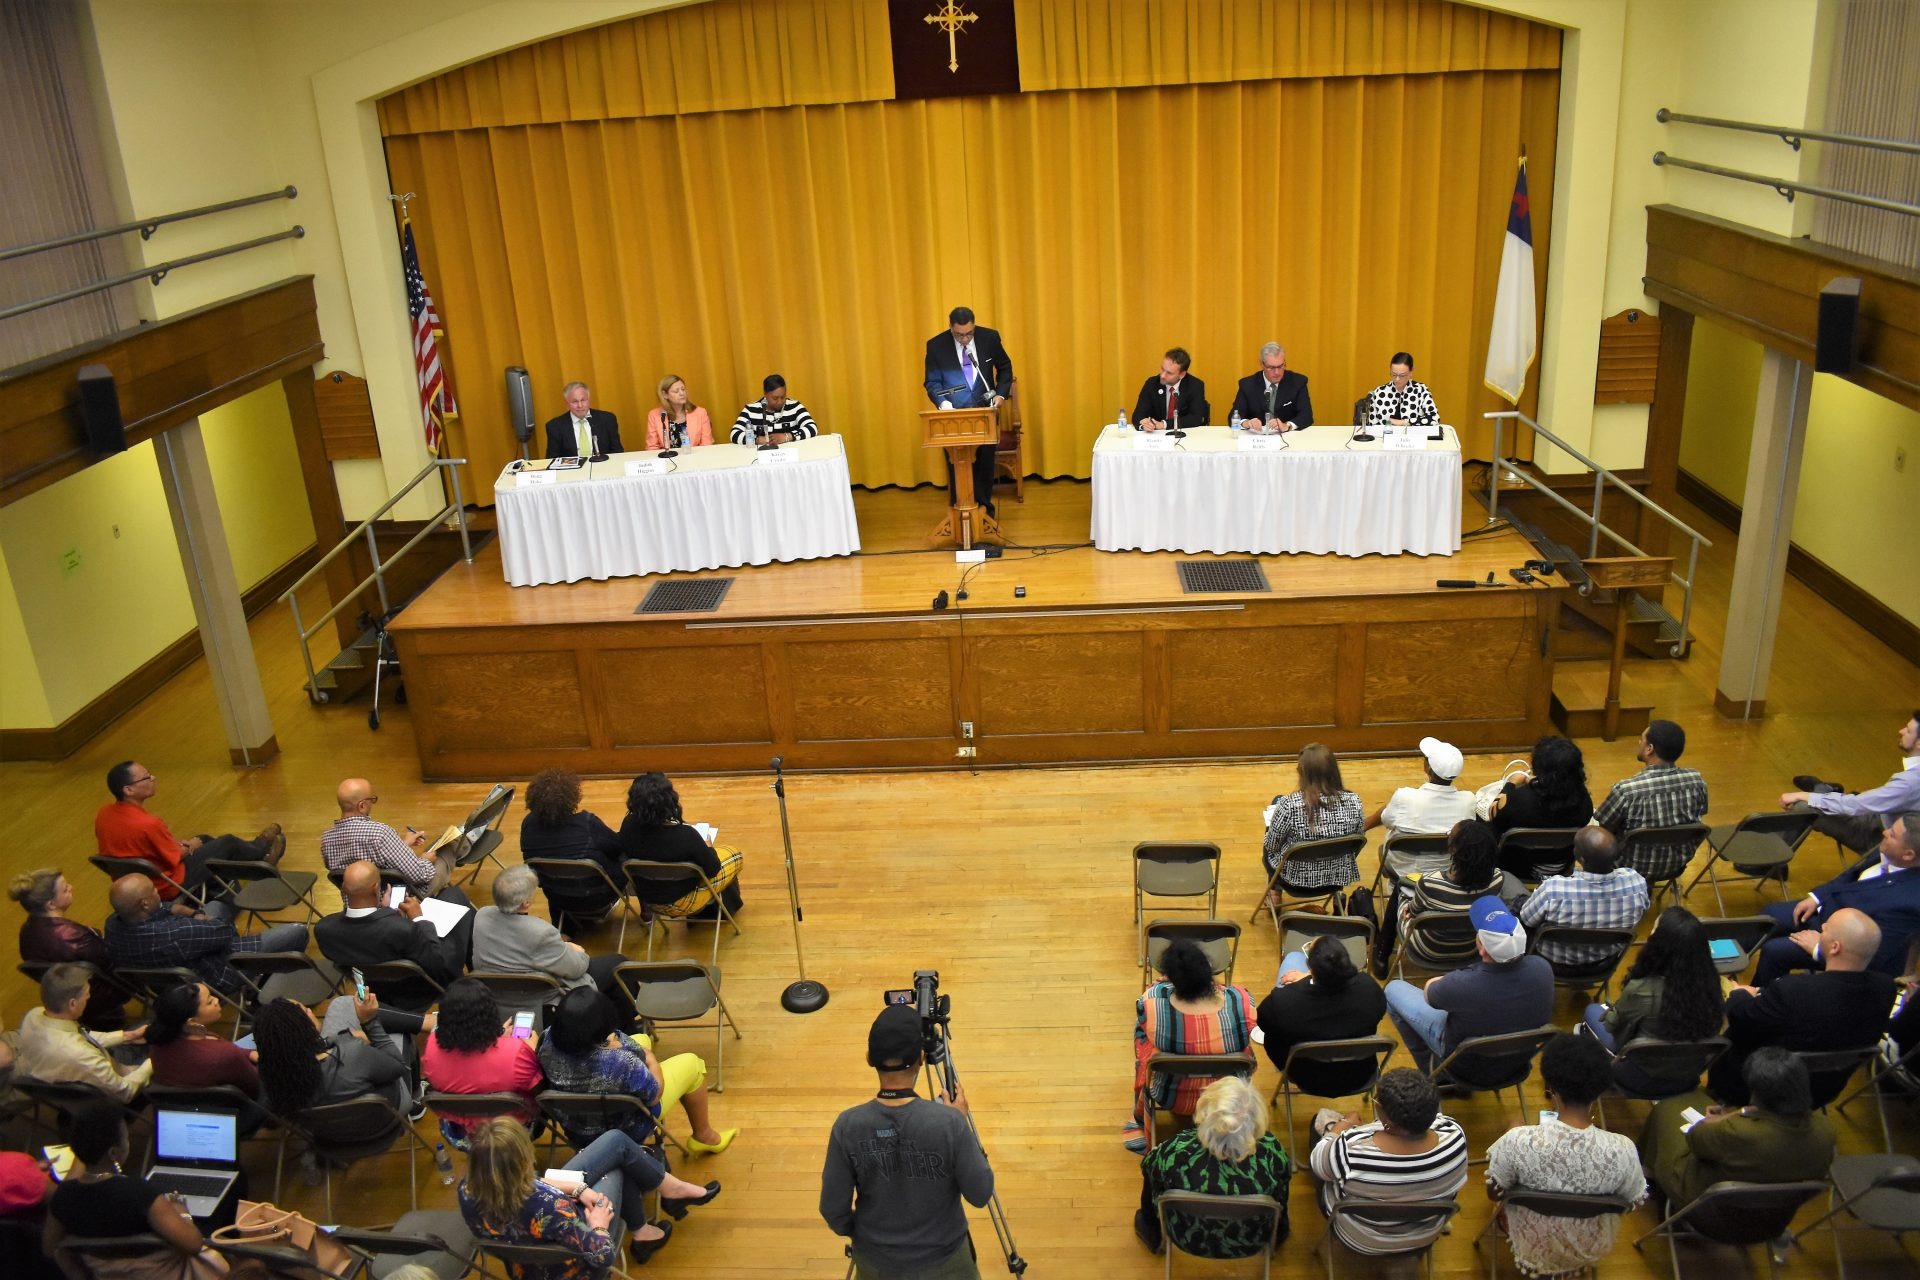 Six York County commissioner candidates participate in a forum in York on April 9, 2019. The event was organized by the African American Leadership Roundtable II.